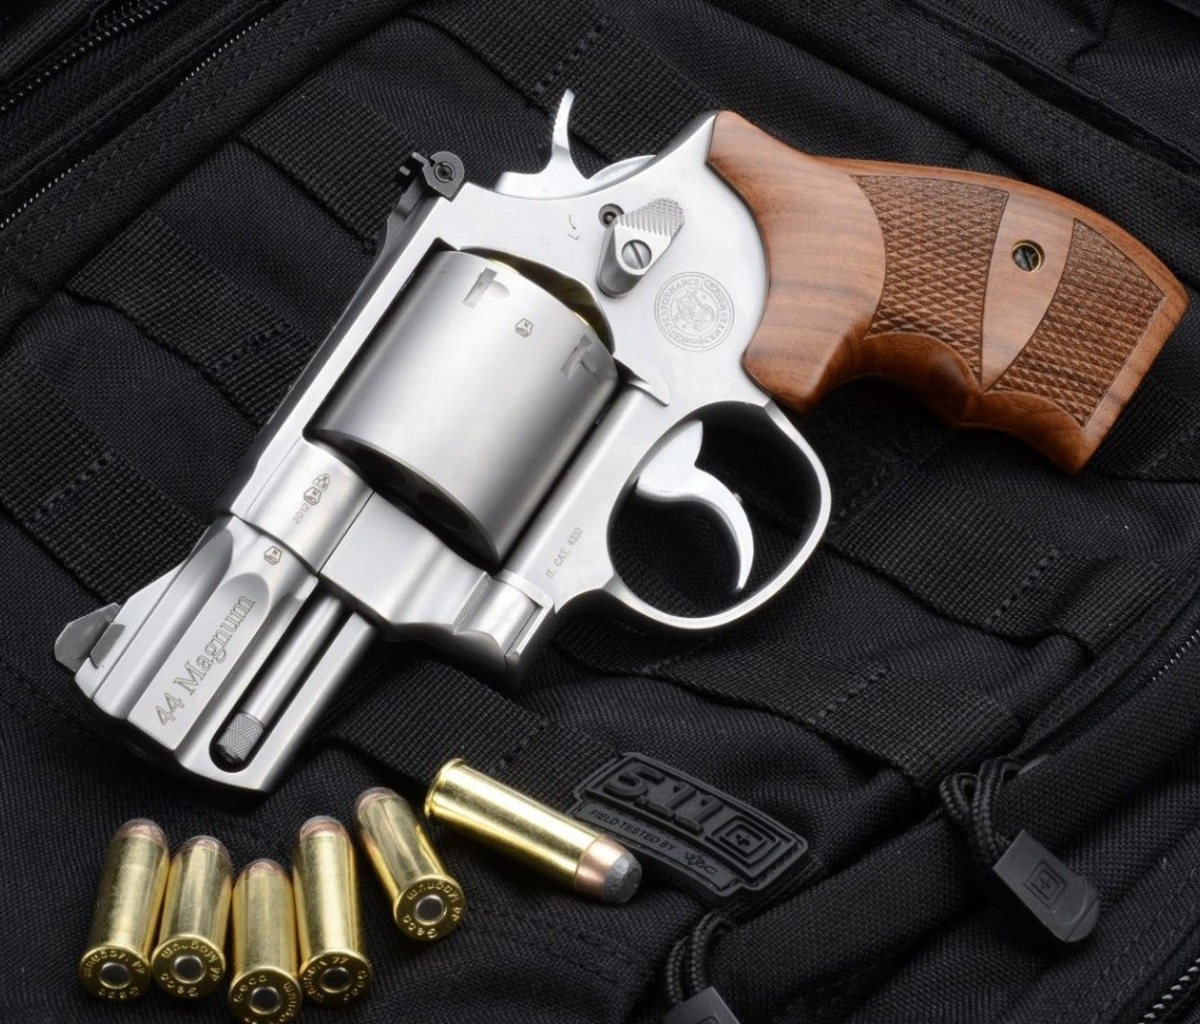 Smith & Wesson 629 wallpaper 1200x1024